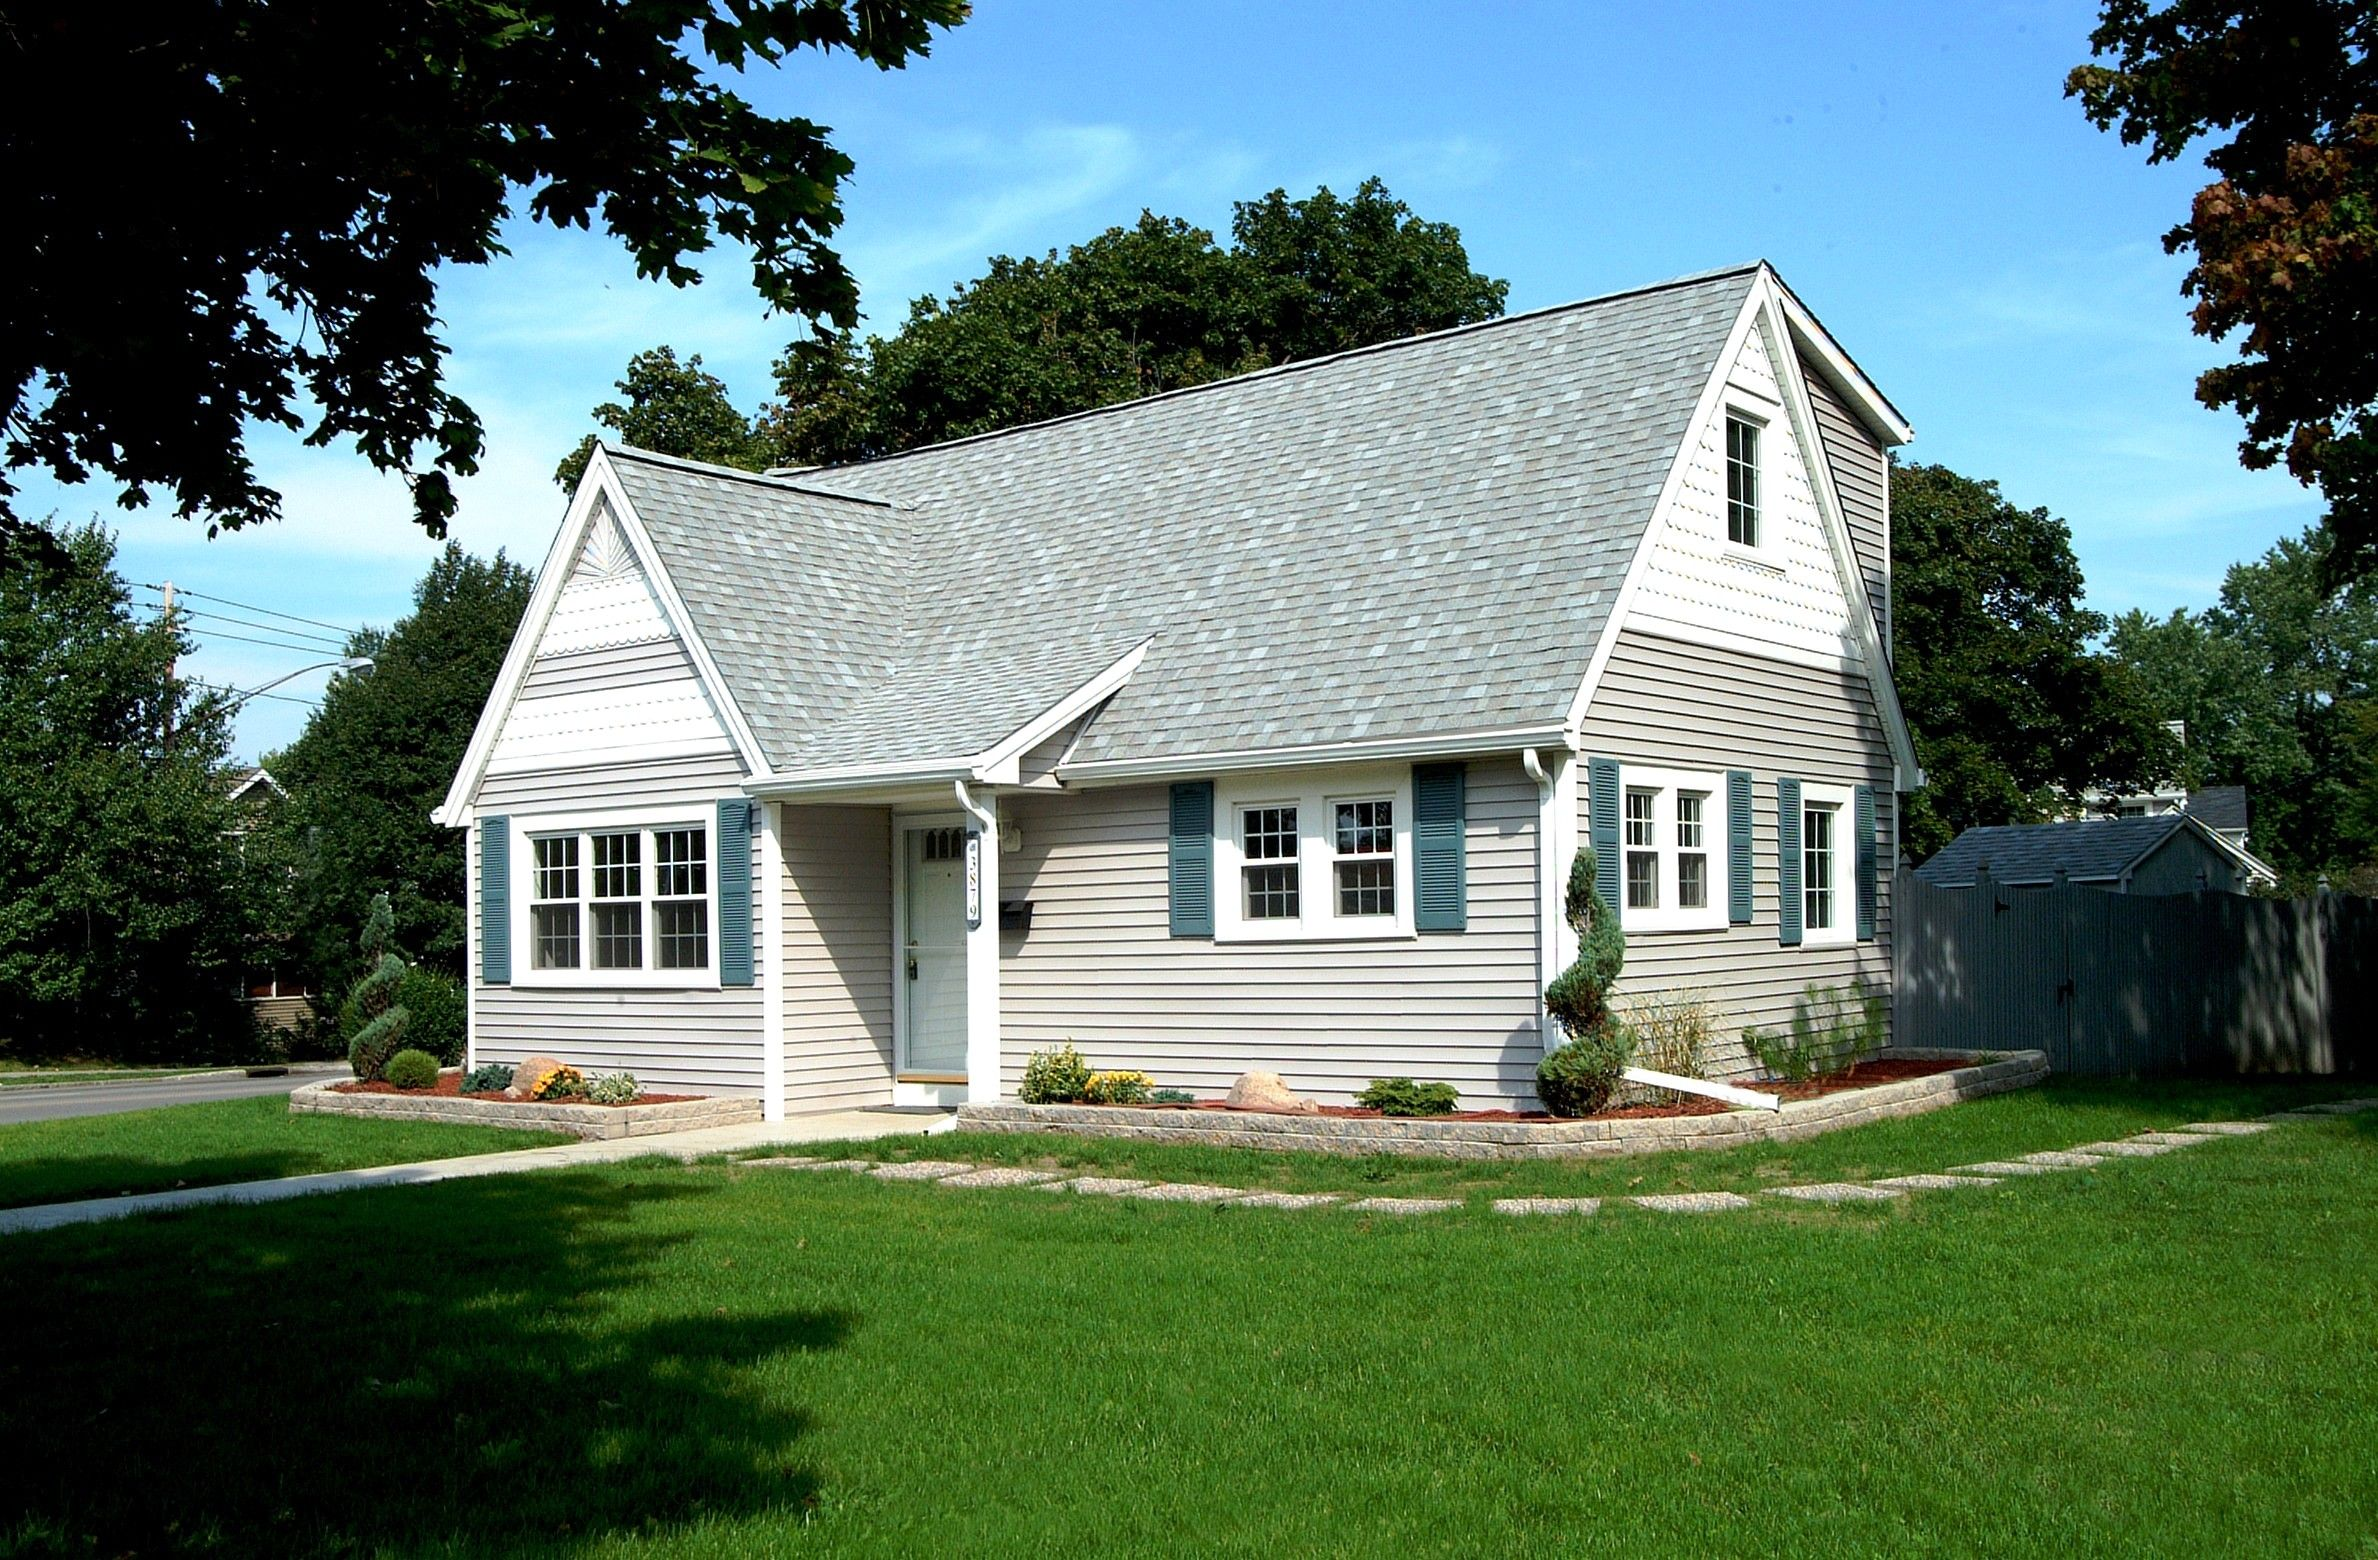 Light Grey Roof Pretty Houses Siding Contractors